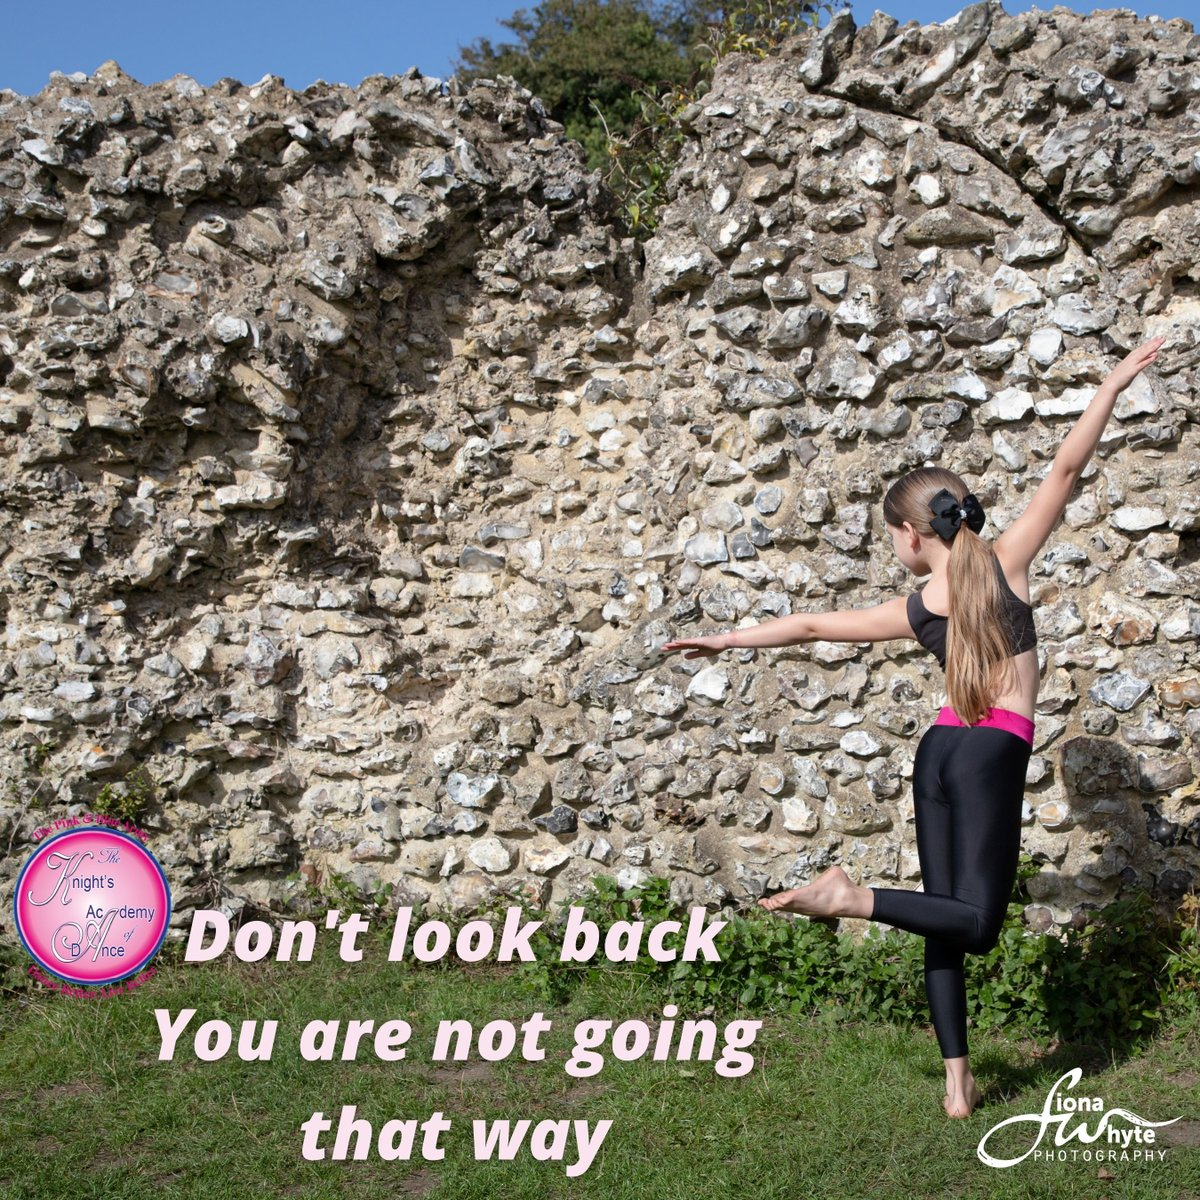 Don't look back, you are not going that way PC @fionawhytepics Dance School @knightsacademy #fionawhytepics ⁣⁣#performingarts #choreography   #dancelife #dance #dancers #fionawhytephotography #photoshoot #location #trending  #dancer #dancing #fitness #knightsacademy https://t.co/CJMb3IcPB9